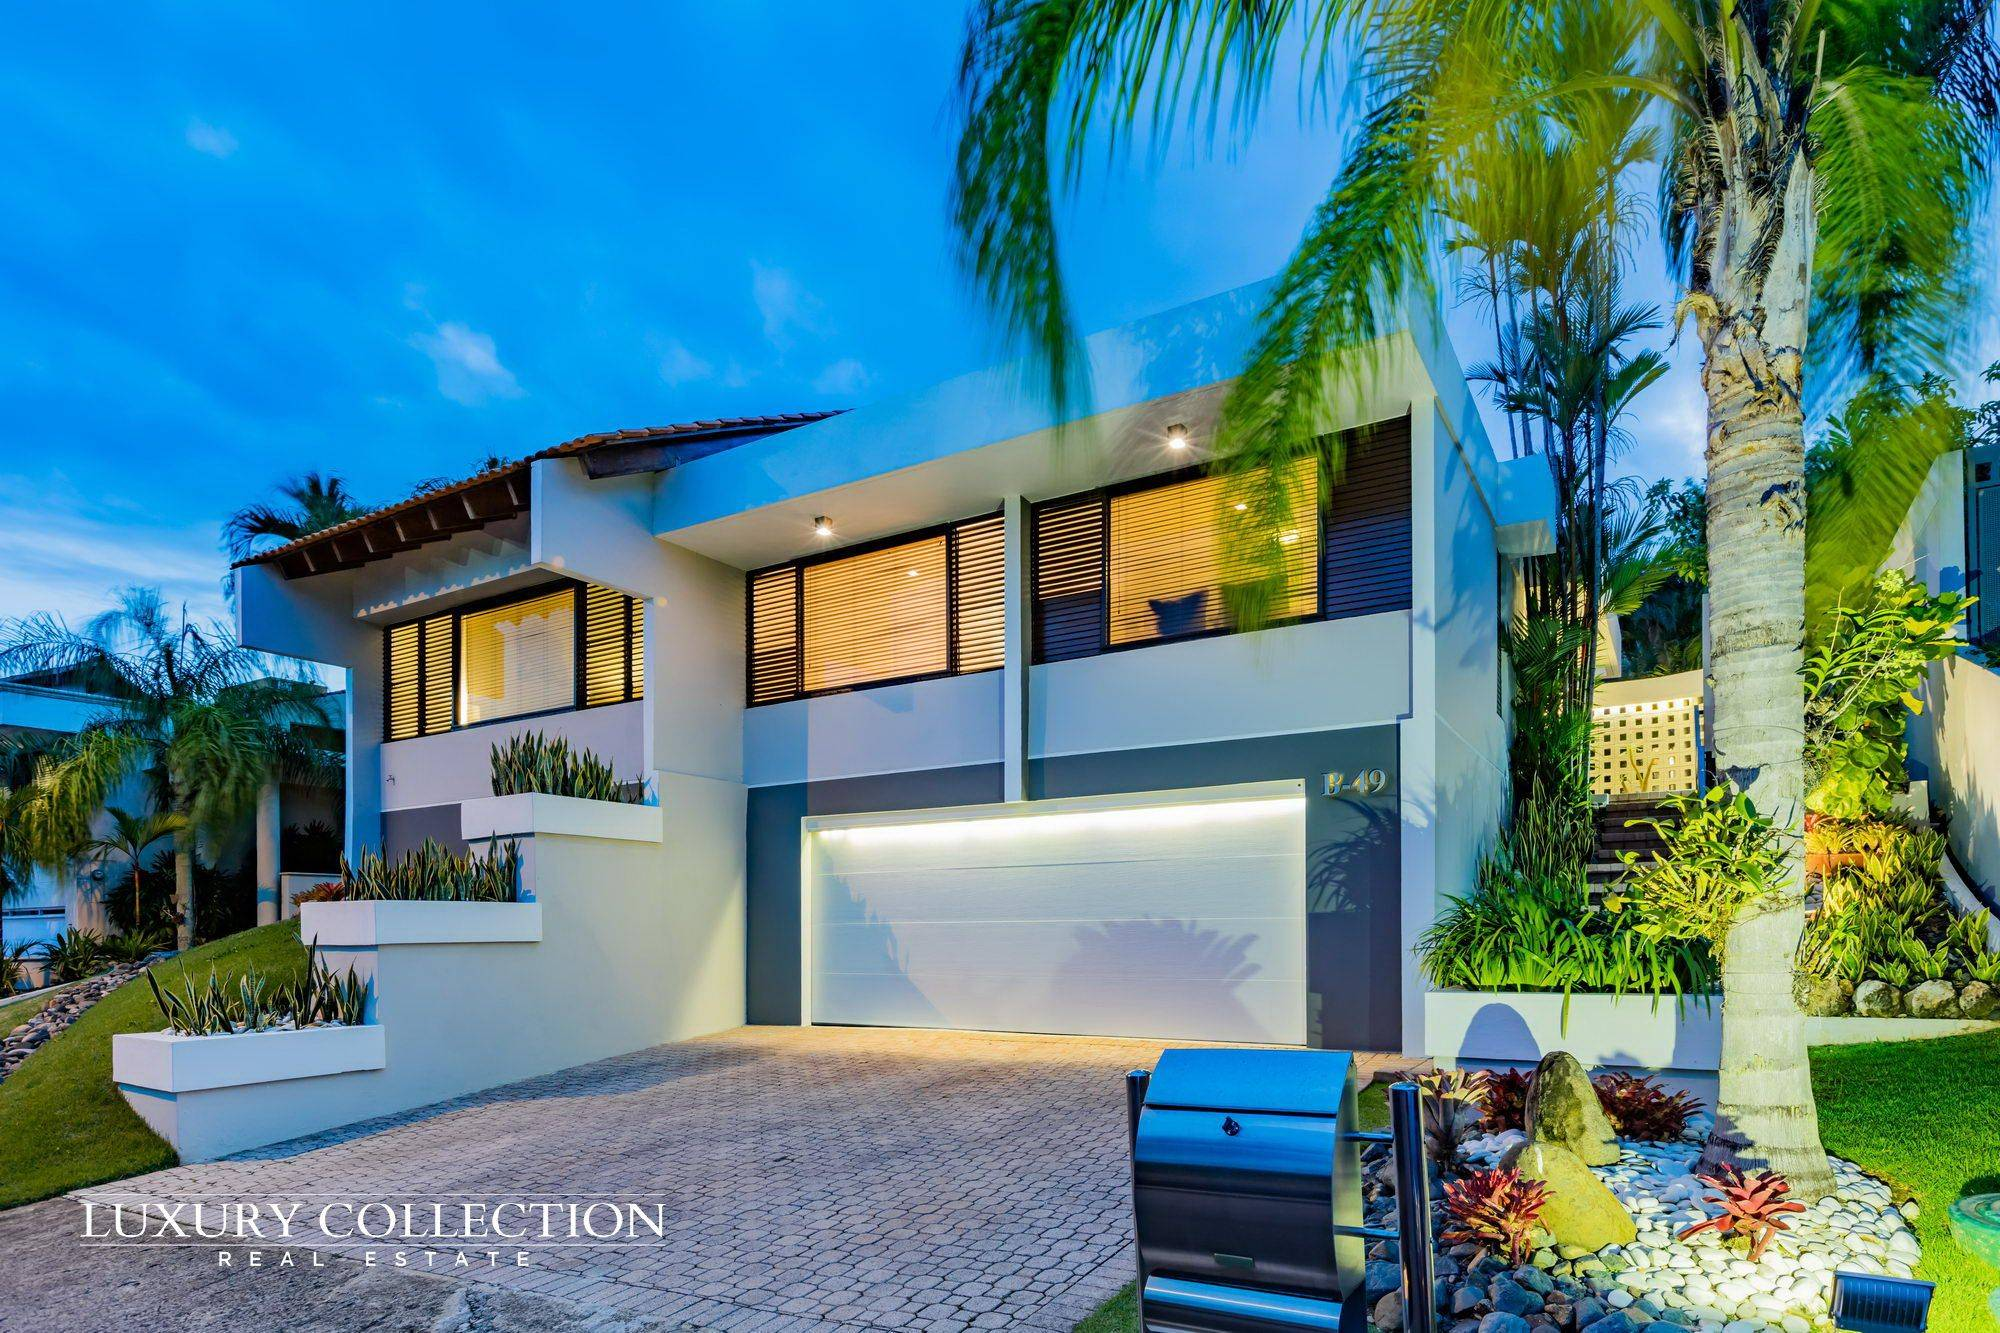 La Colina Guaynabo Luxury Collection Real Estate